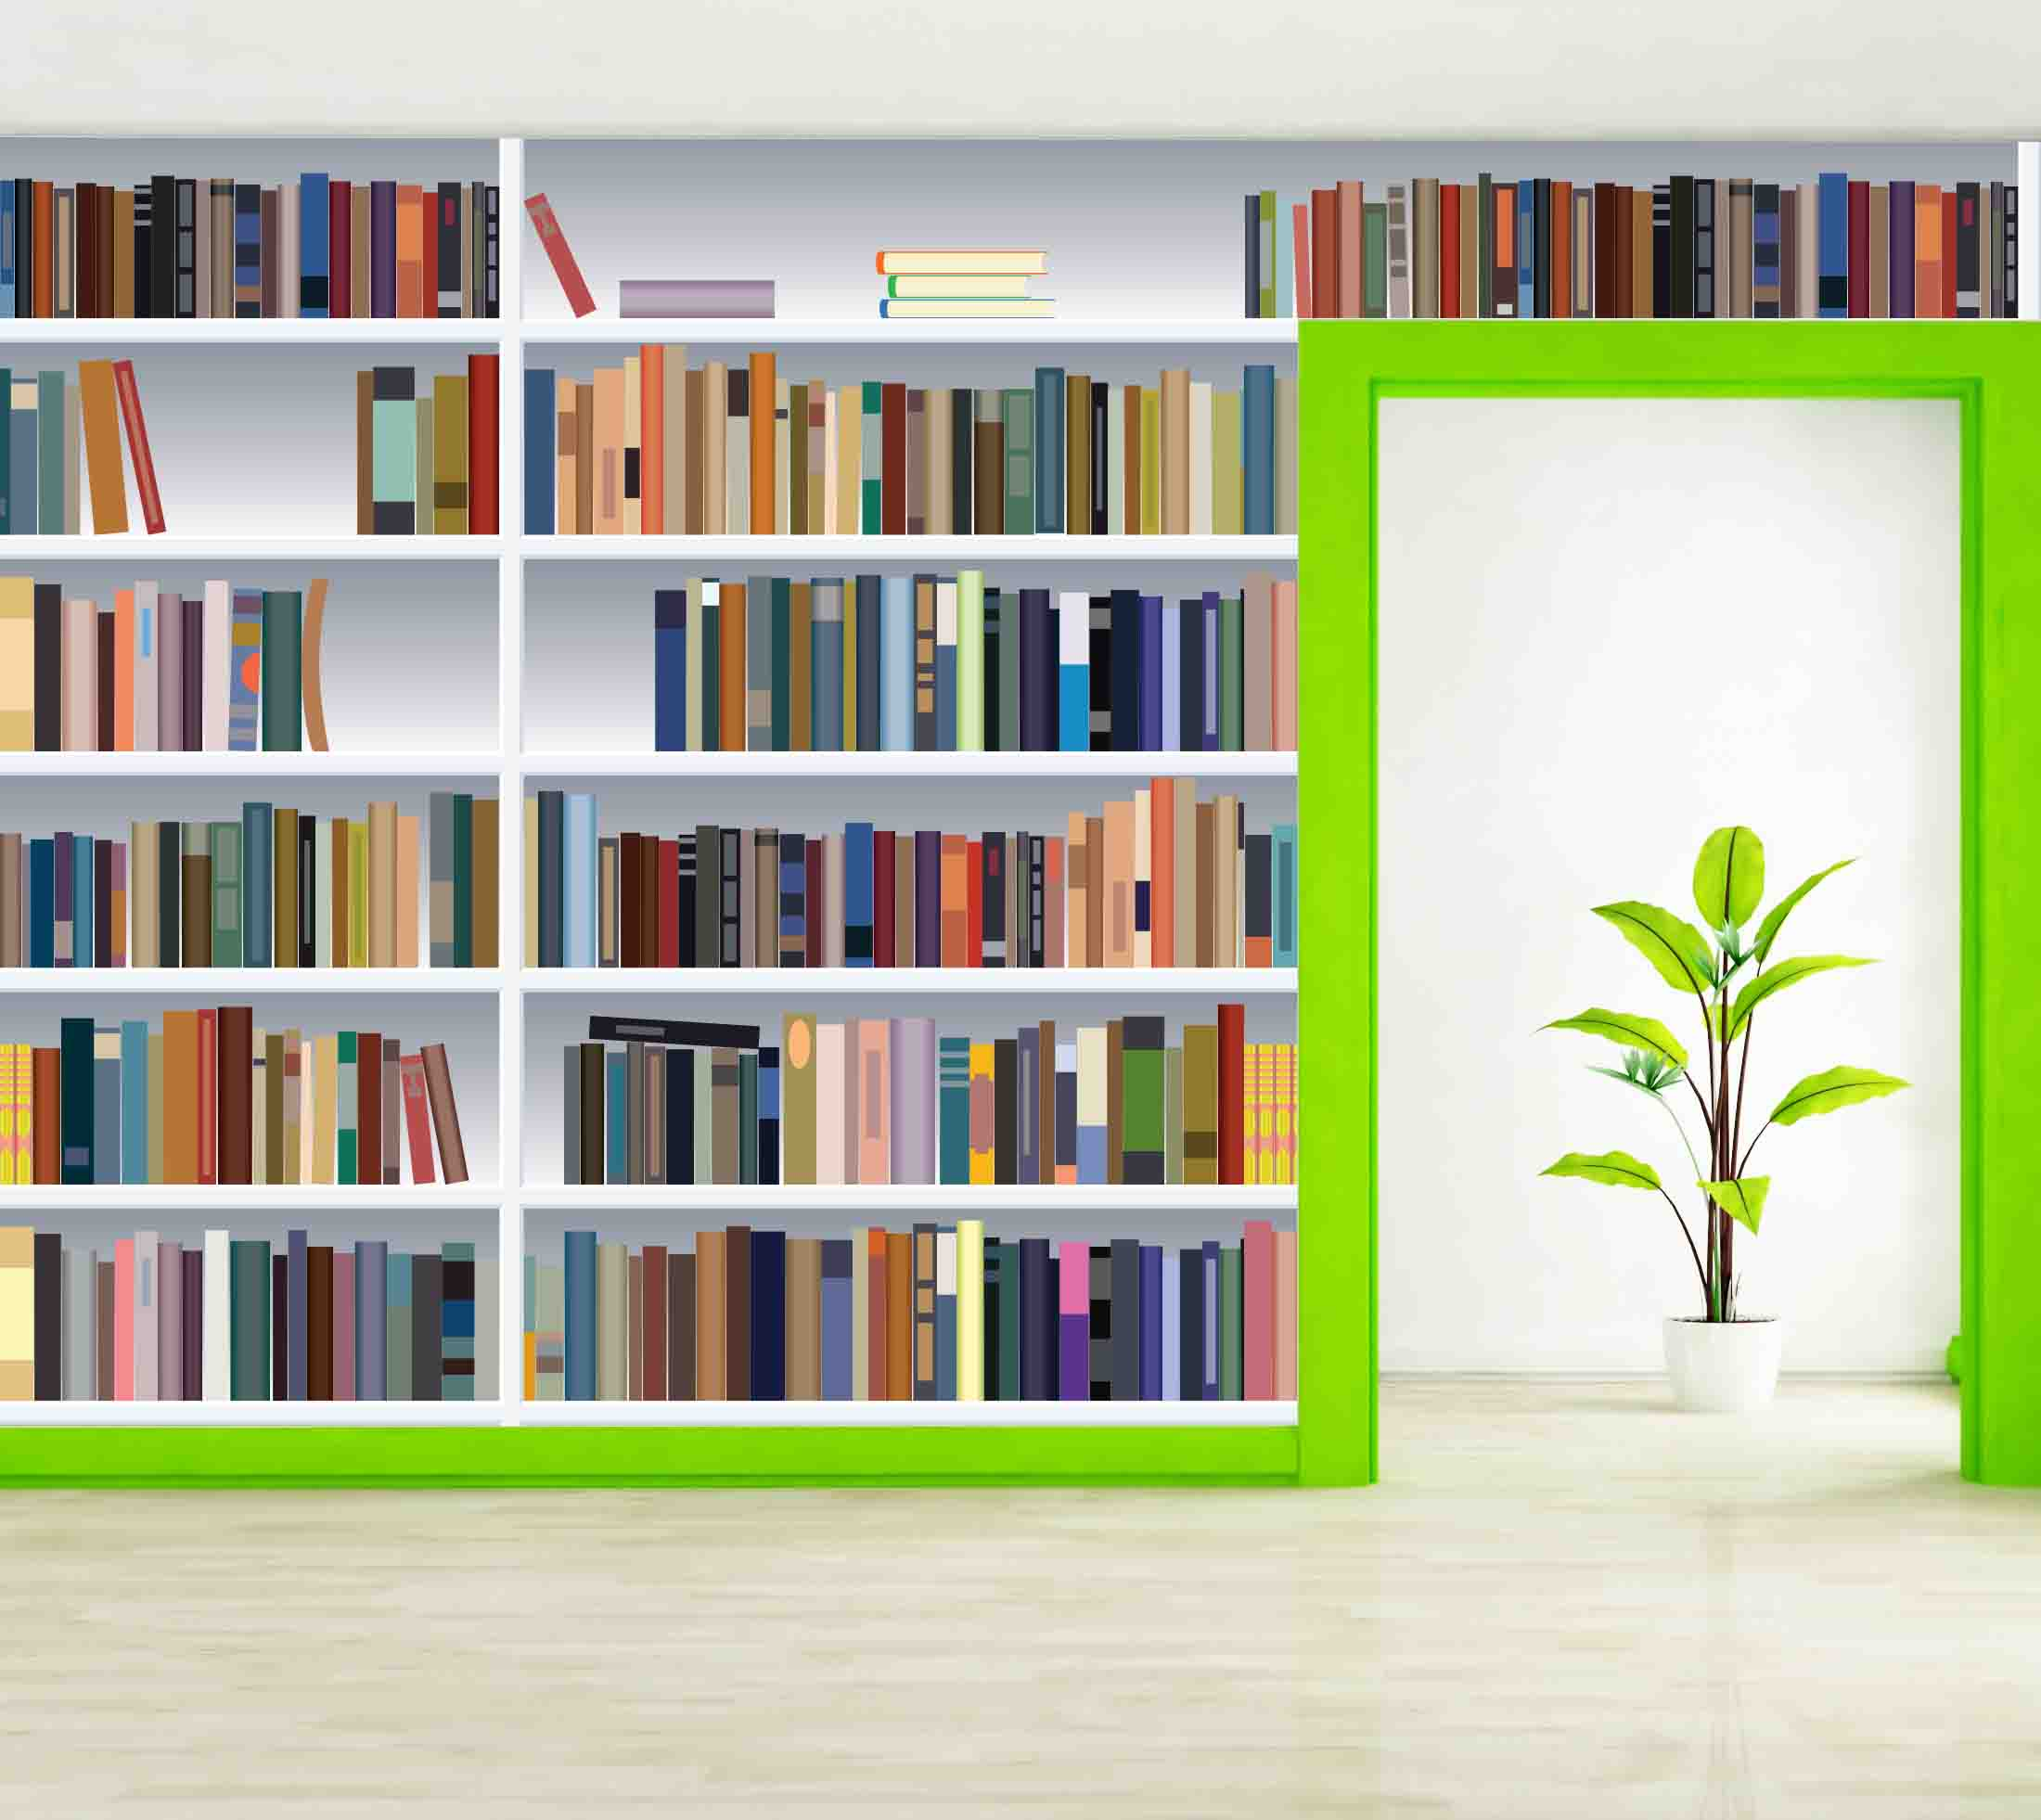 Bookshelf Wallpaper Bookshelf wallpapers 2200x1962